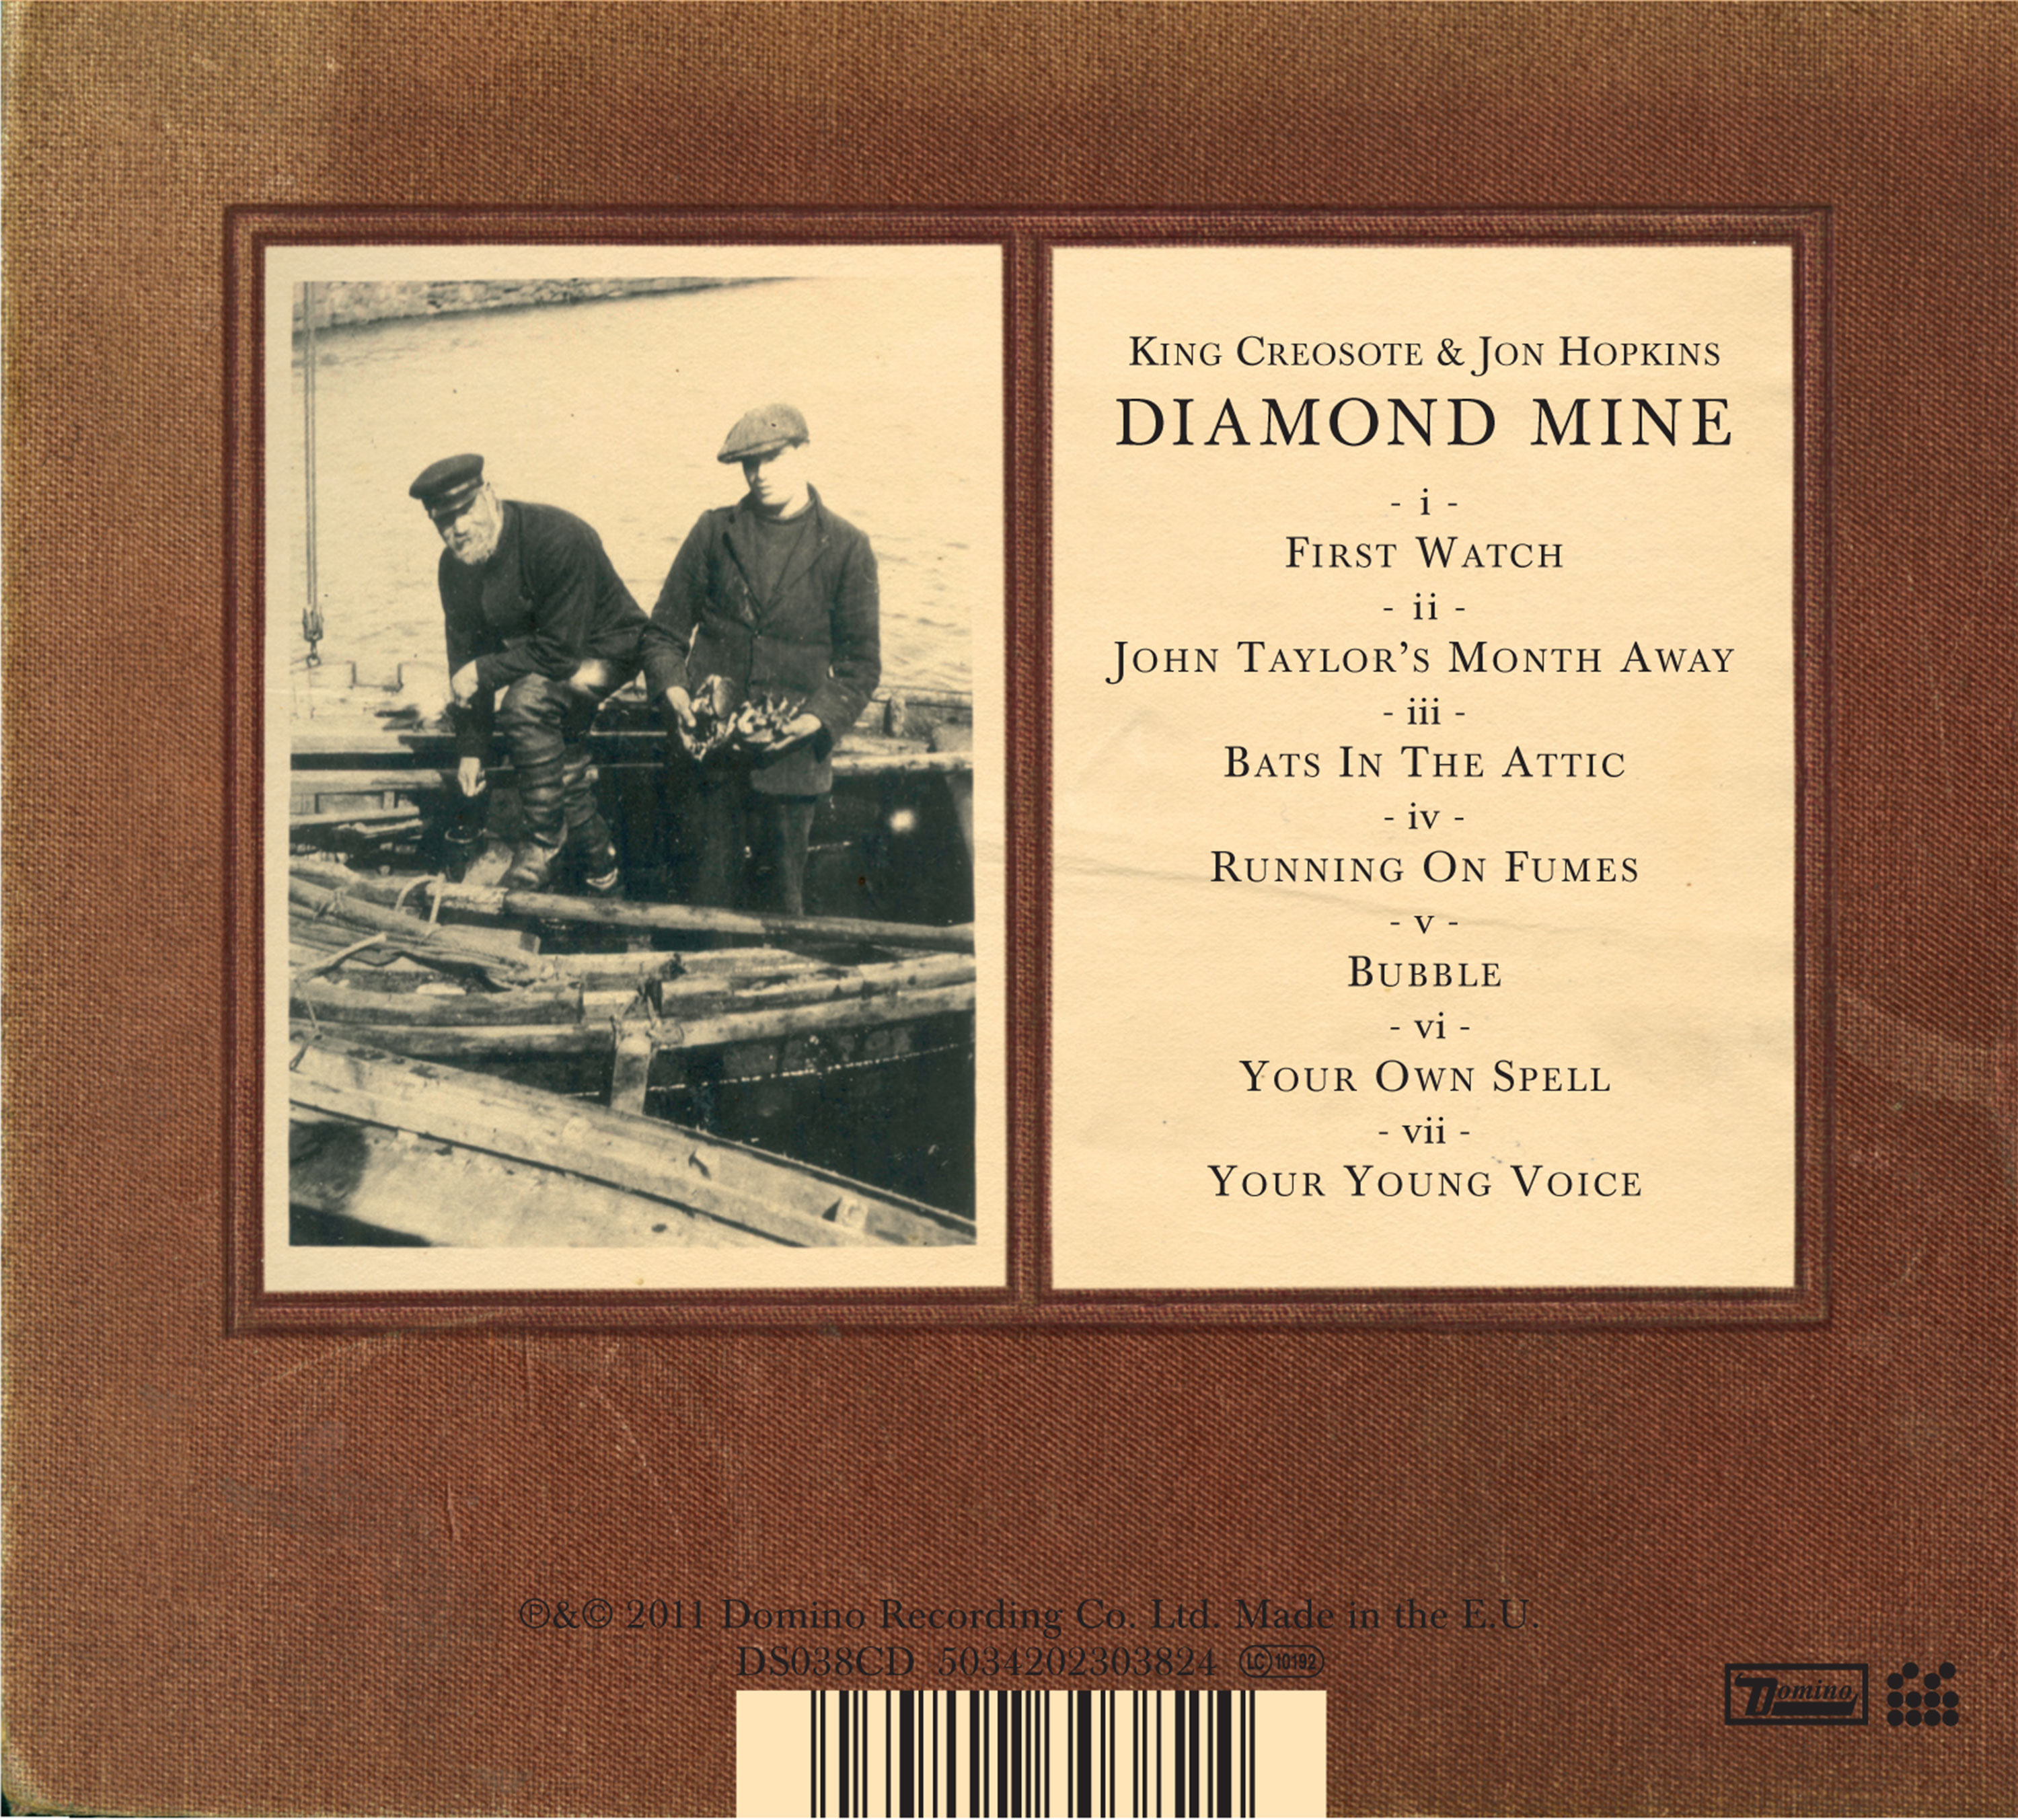 Diamond Mine Hi Res CD album artwork by Matthew Cooper